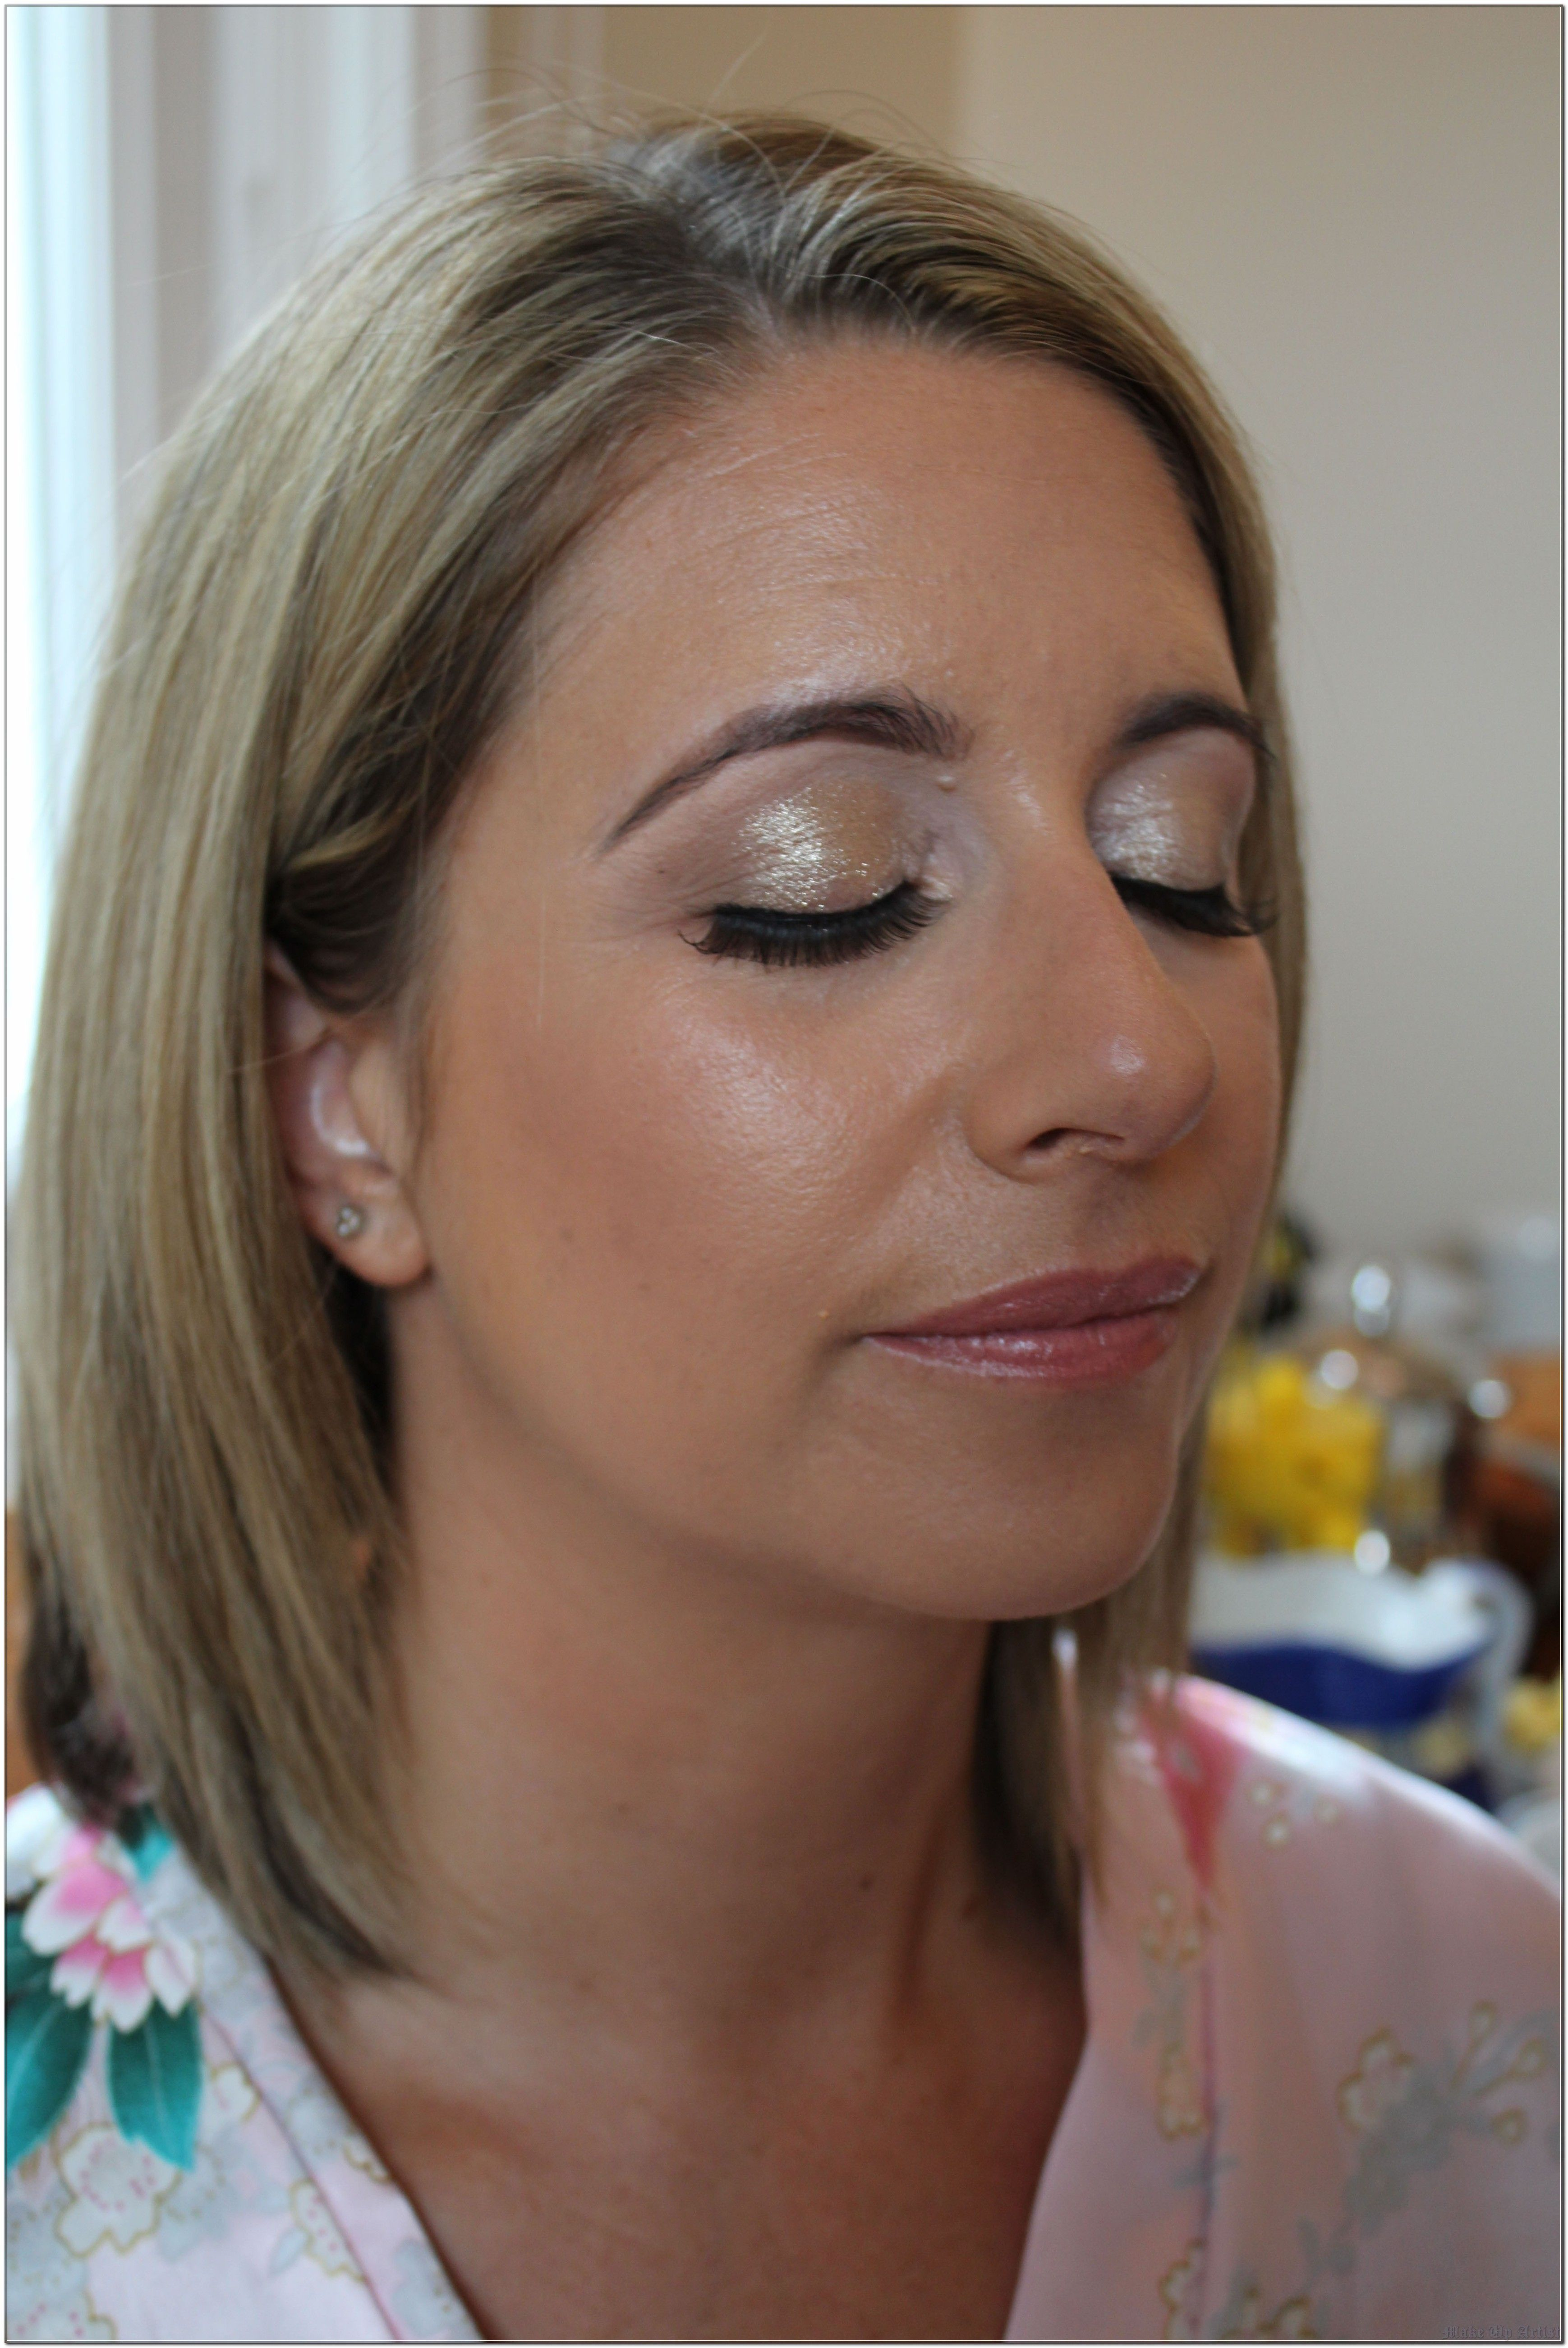 Don't Just Sit There! Start Make Up Artist